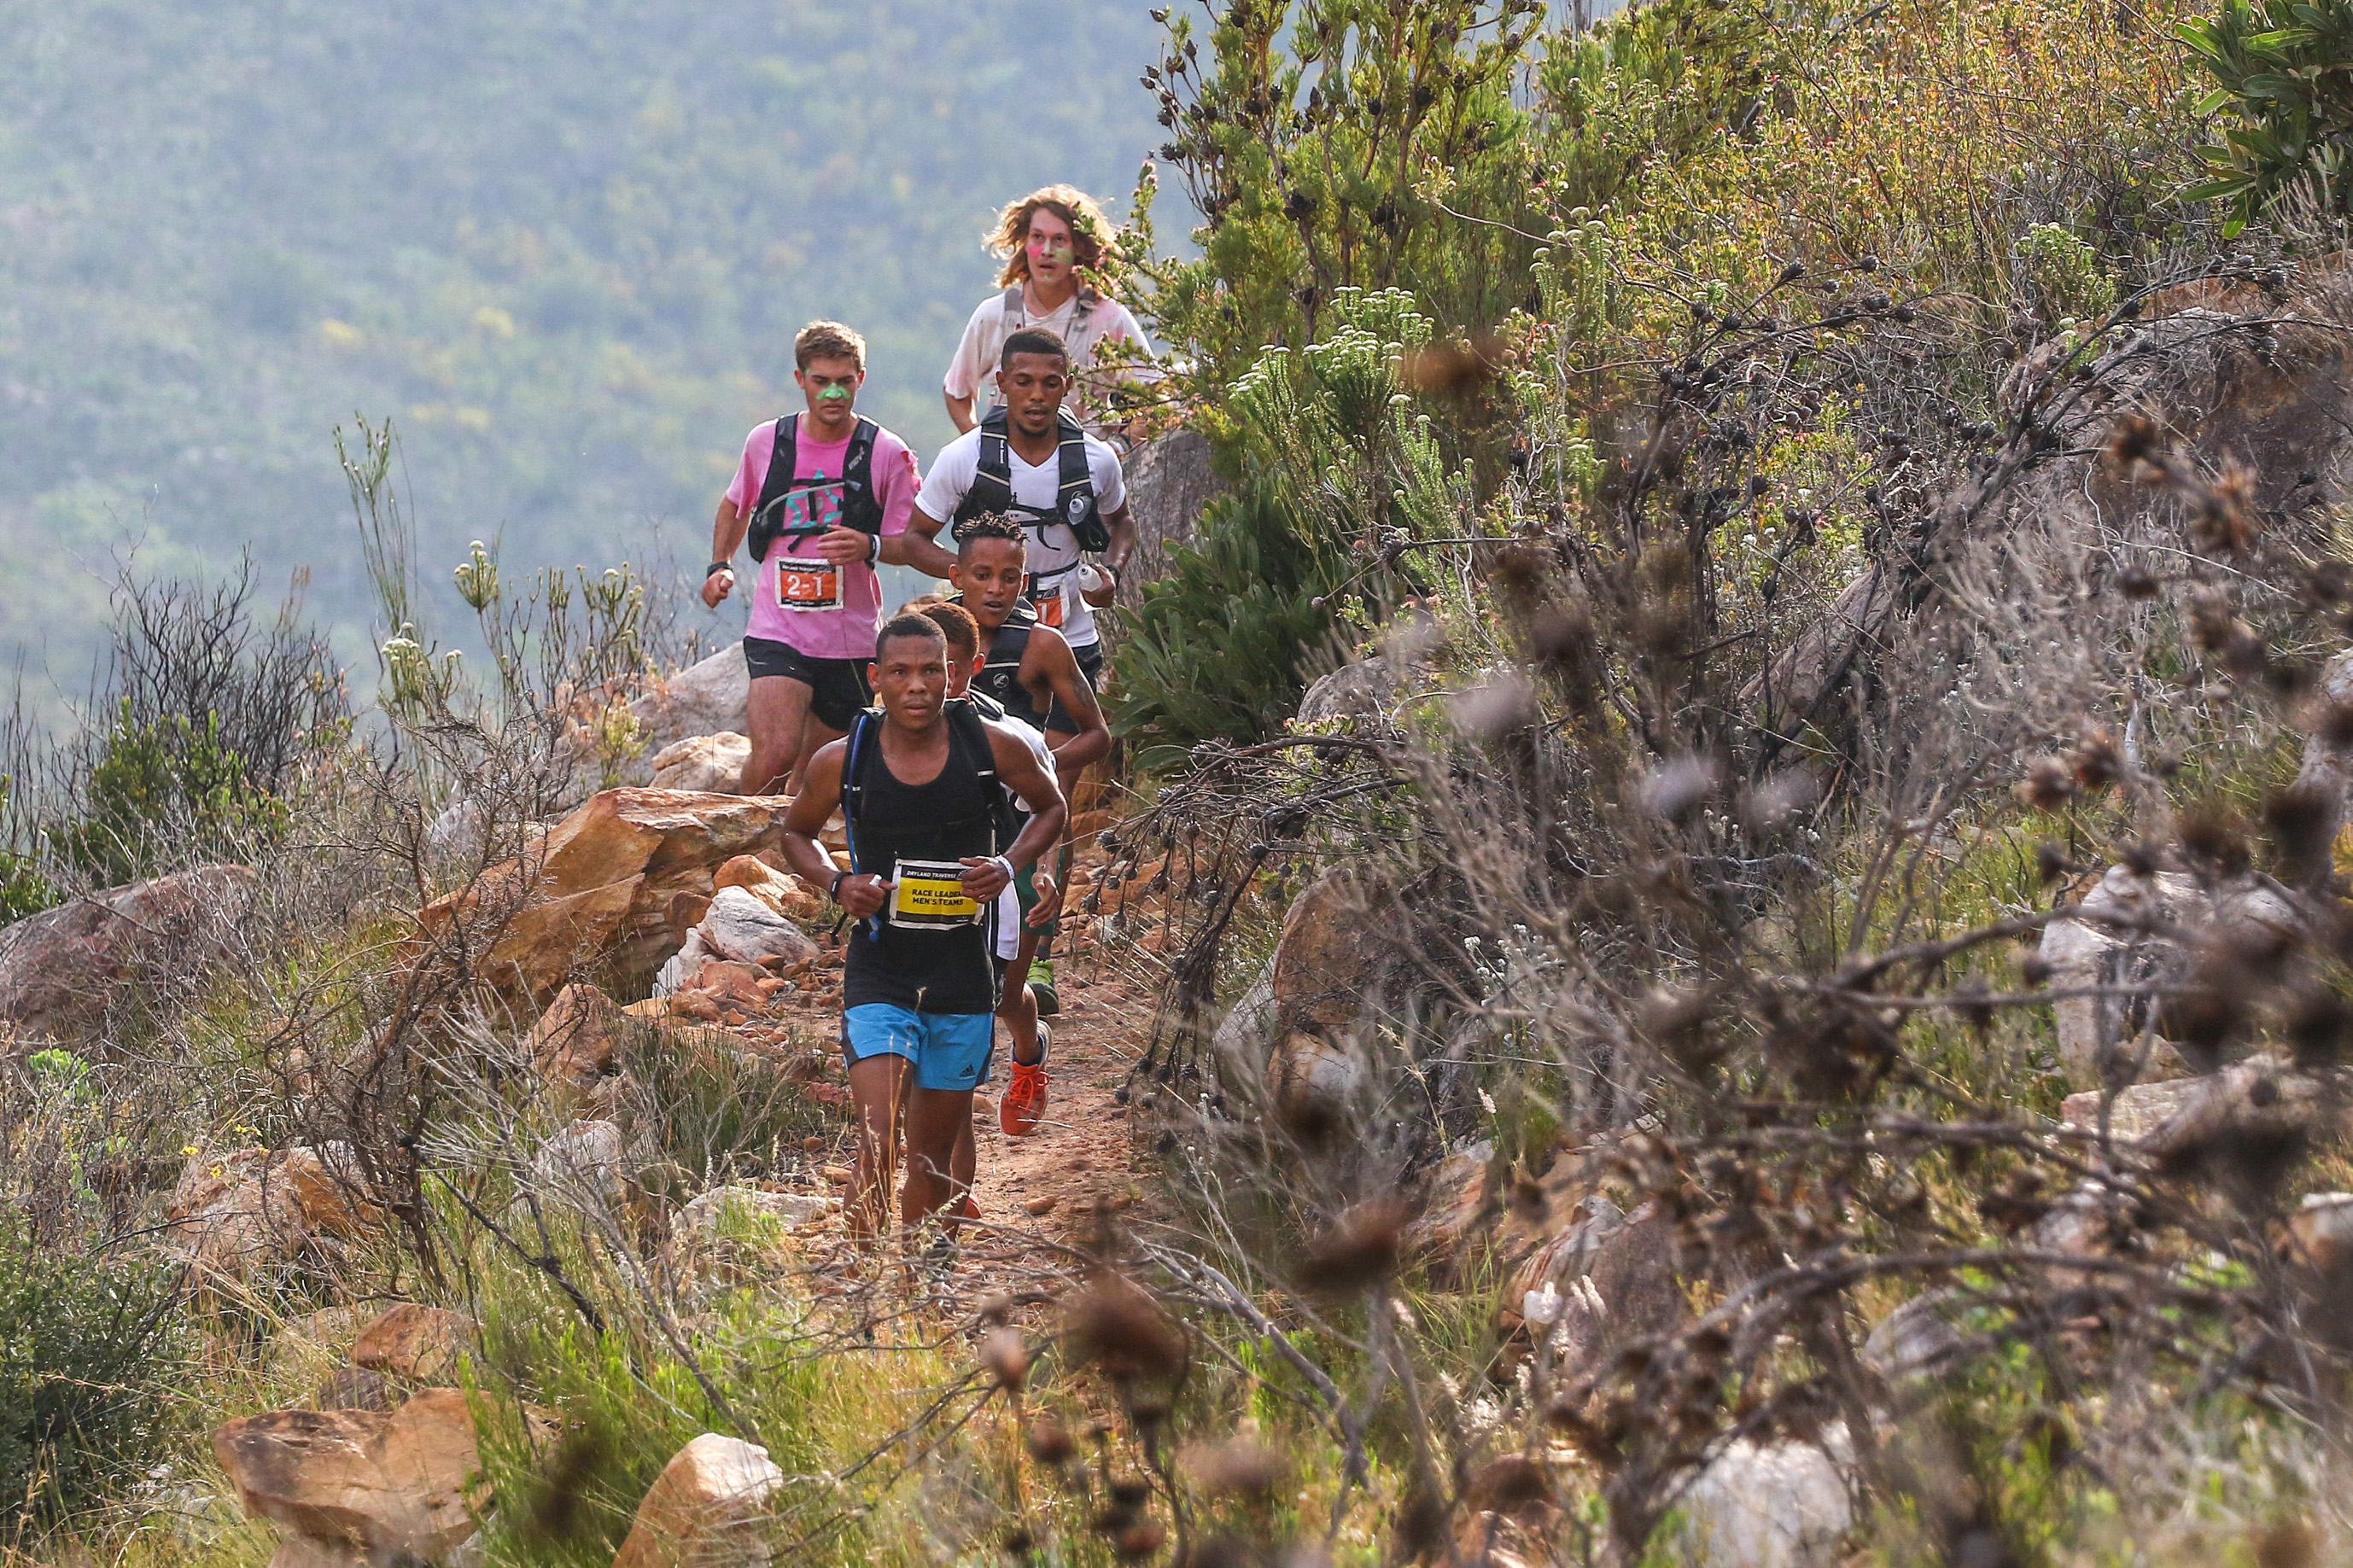 Ettiene Plaatjies  leads the field of main contenders during Stage 1 of the Dryland Traverse. Photo by Oakpics.com.